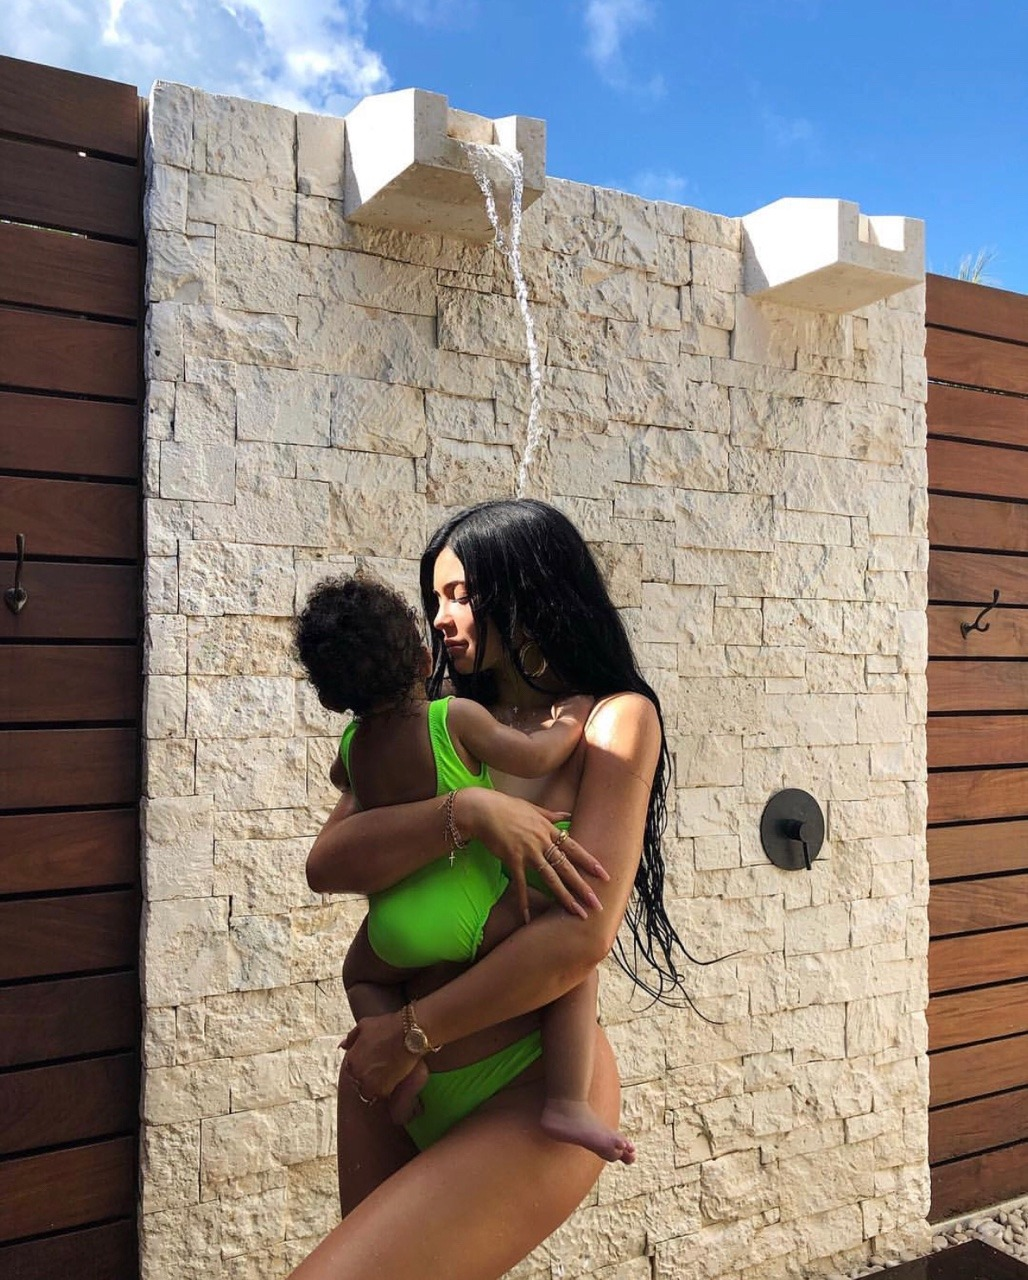 kylie jenner body, kylie jenner hair, stormi webster and fashion